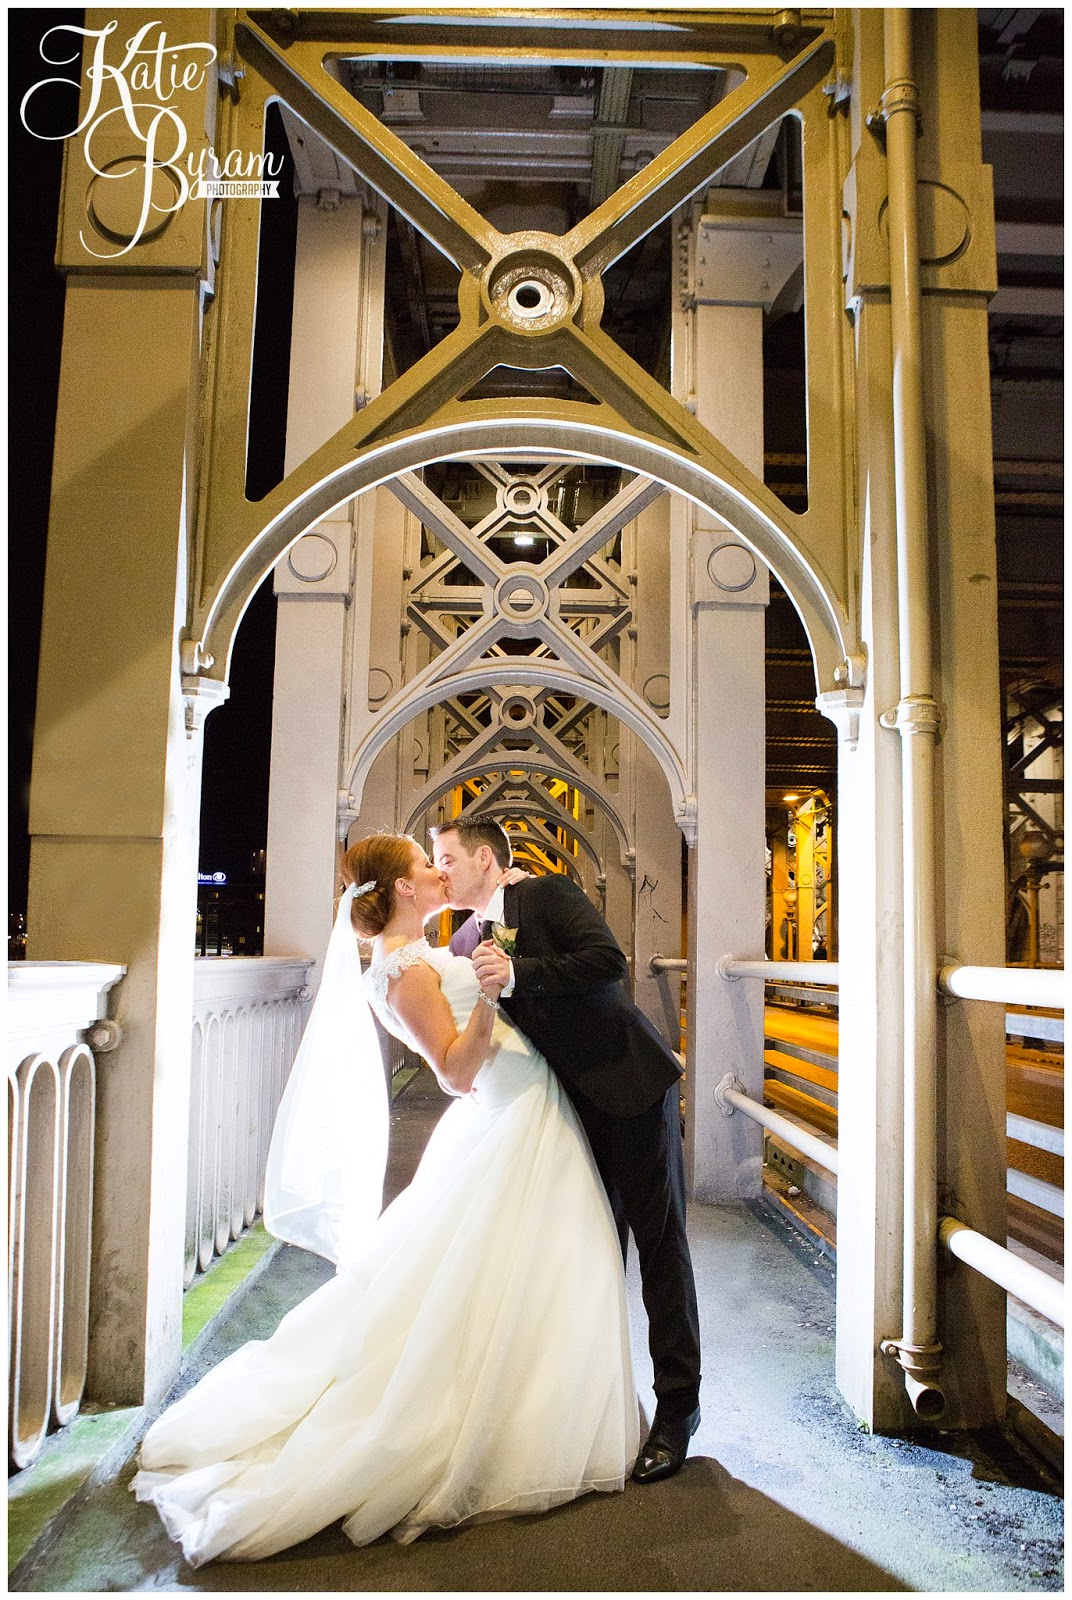 high level bridge wedding, newcastle city centre wedding, the vermont hotel,vermont weddings, newcastle wedding venue, katie byram photography, hotel wedding newcastle, quayside, nighttime wedding photographs